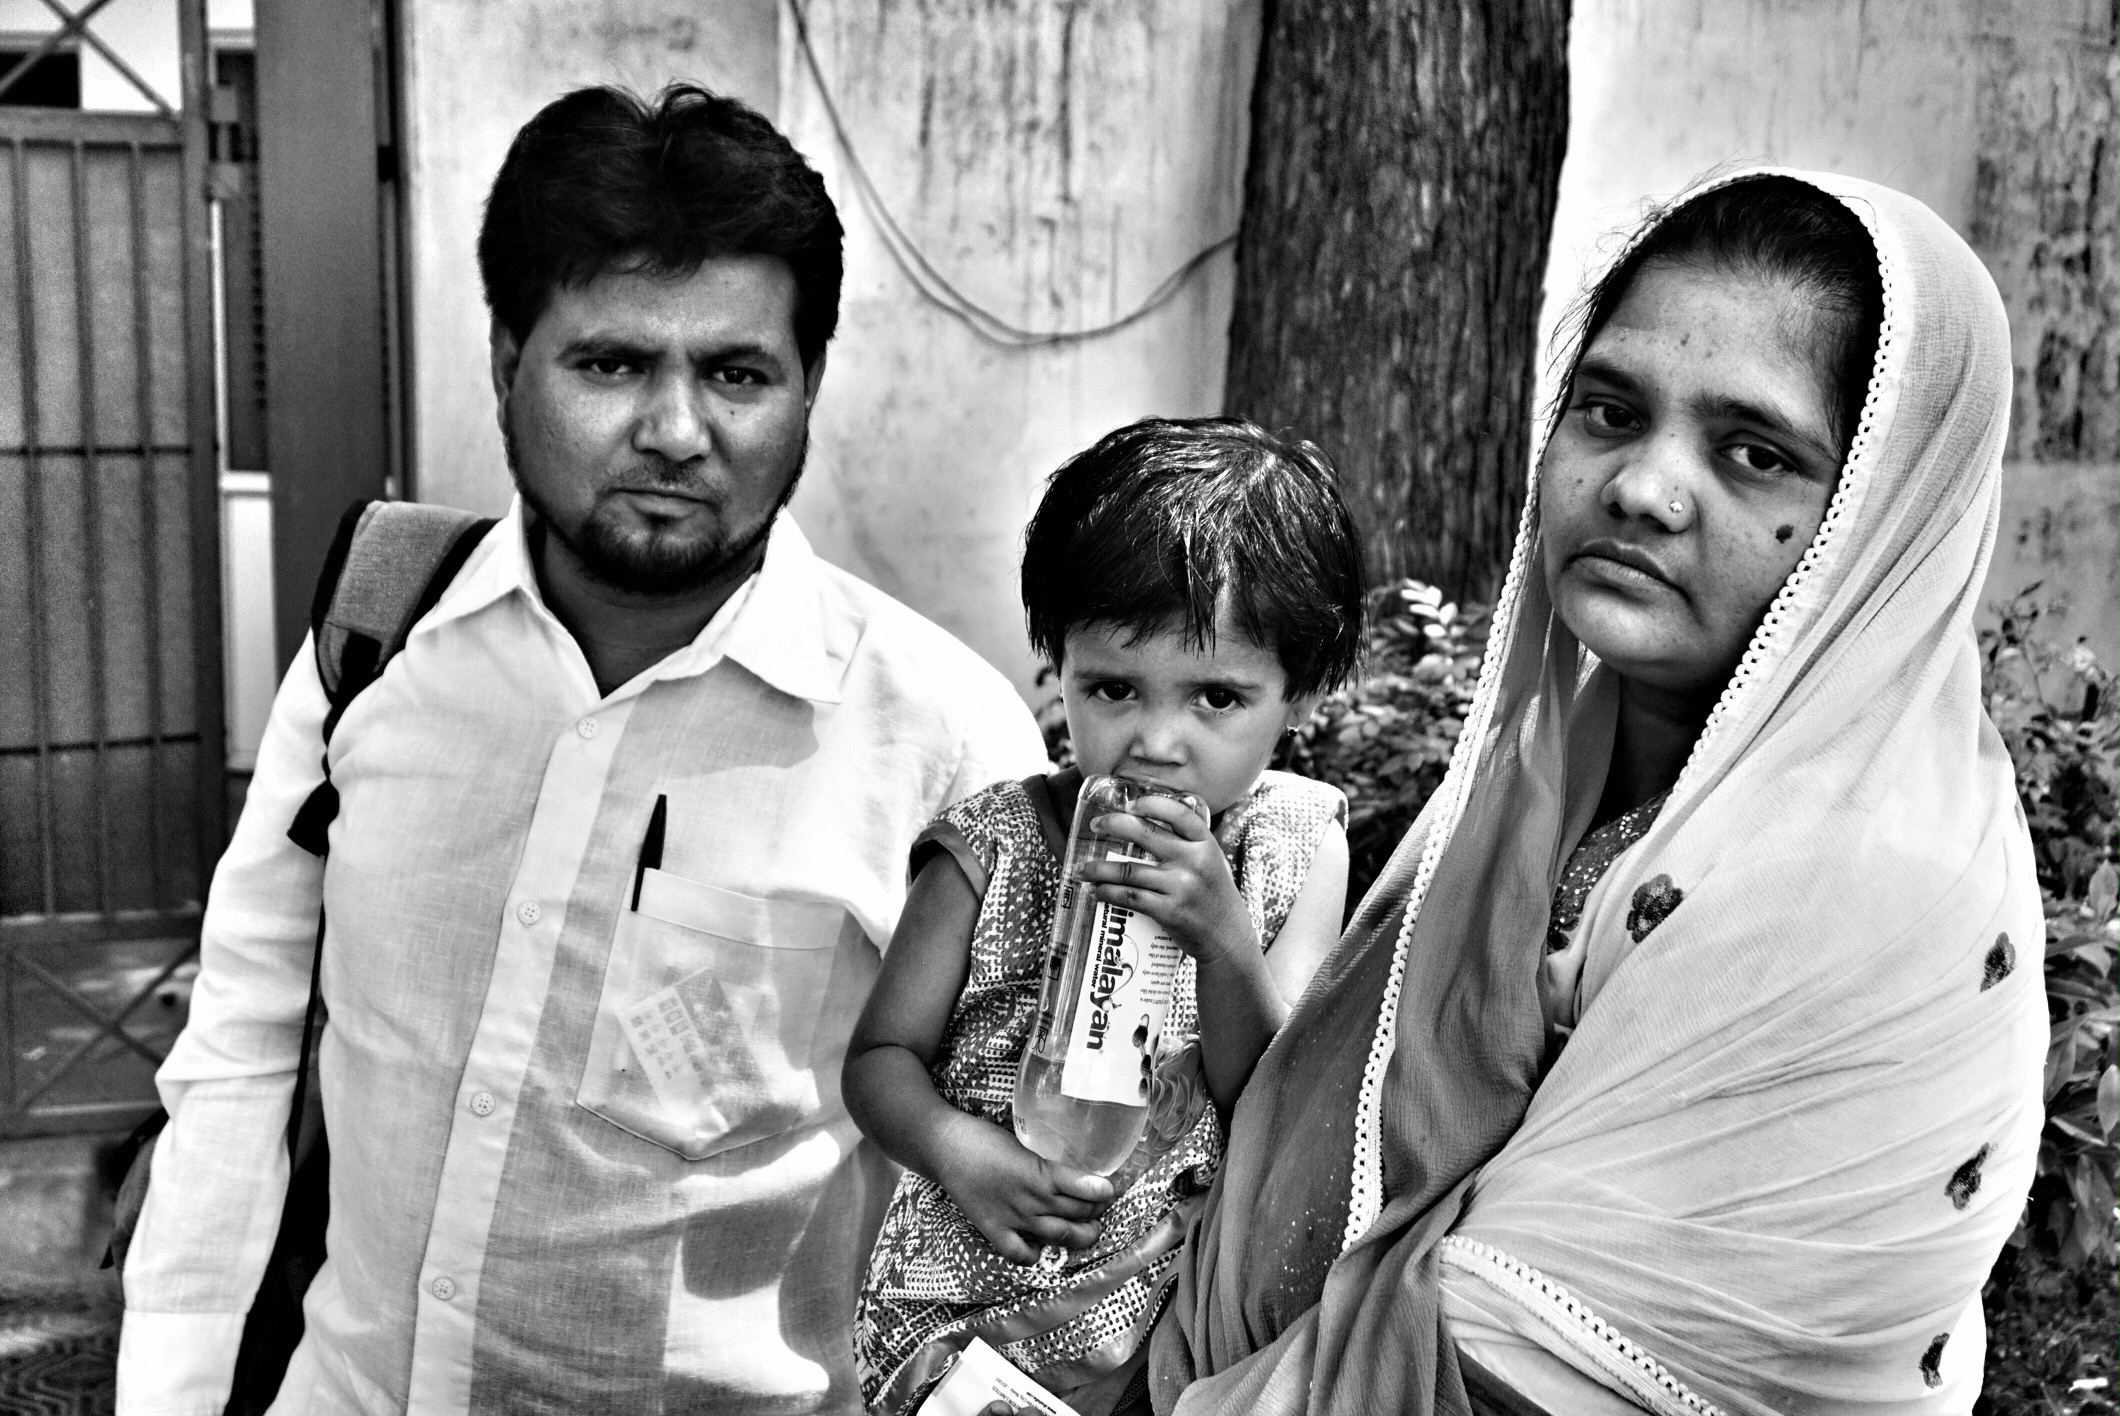 Bilkis Bano Gangrape: SC Gives Gujarat Govt Last Chance to File Report on Action Against Guilty Cops